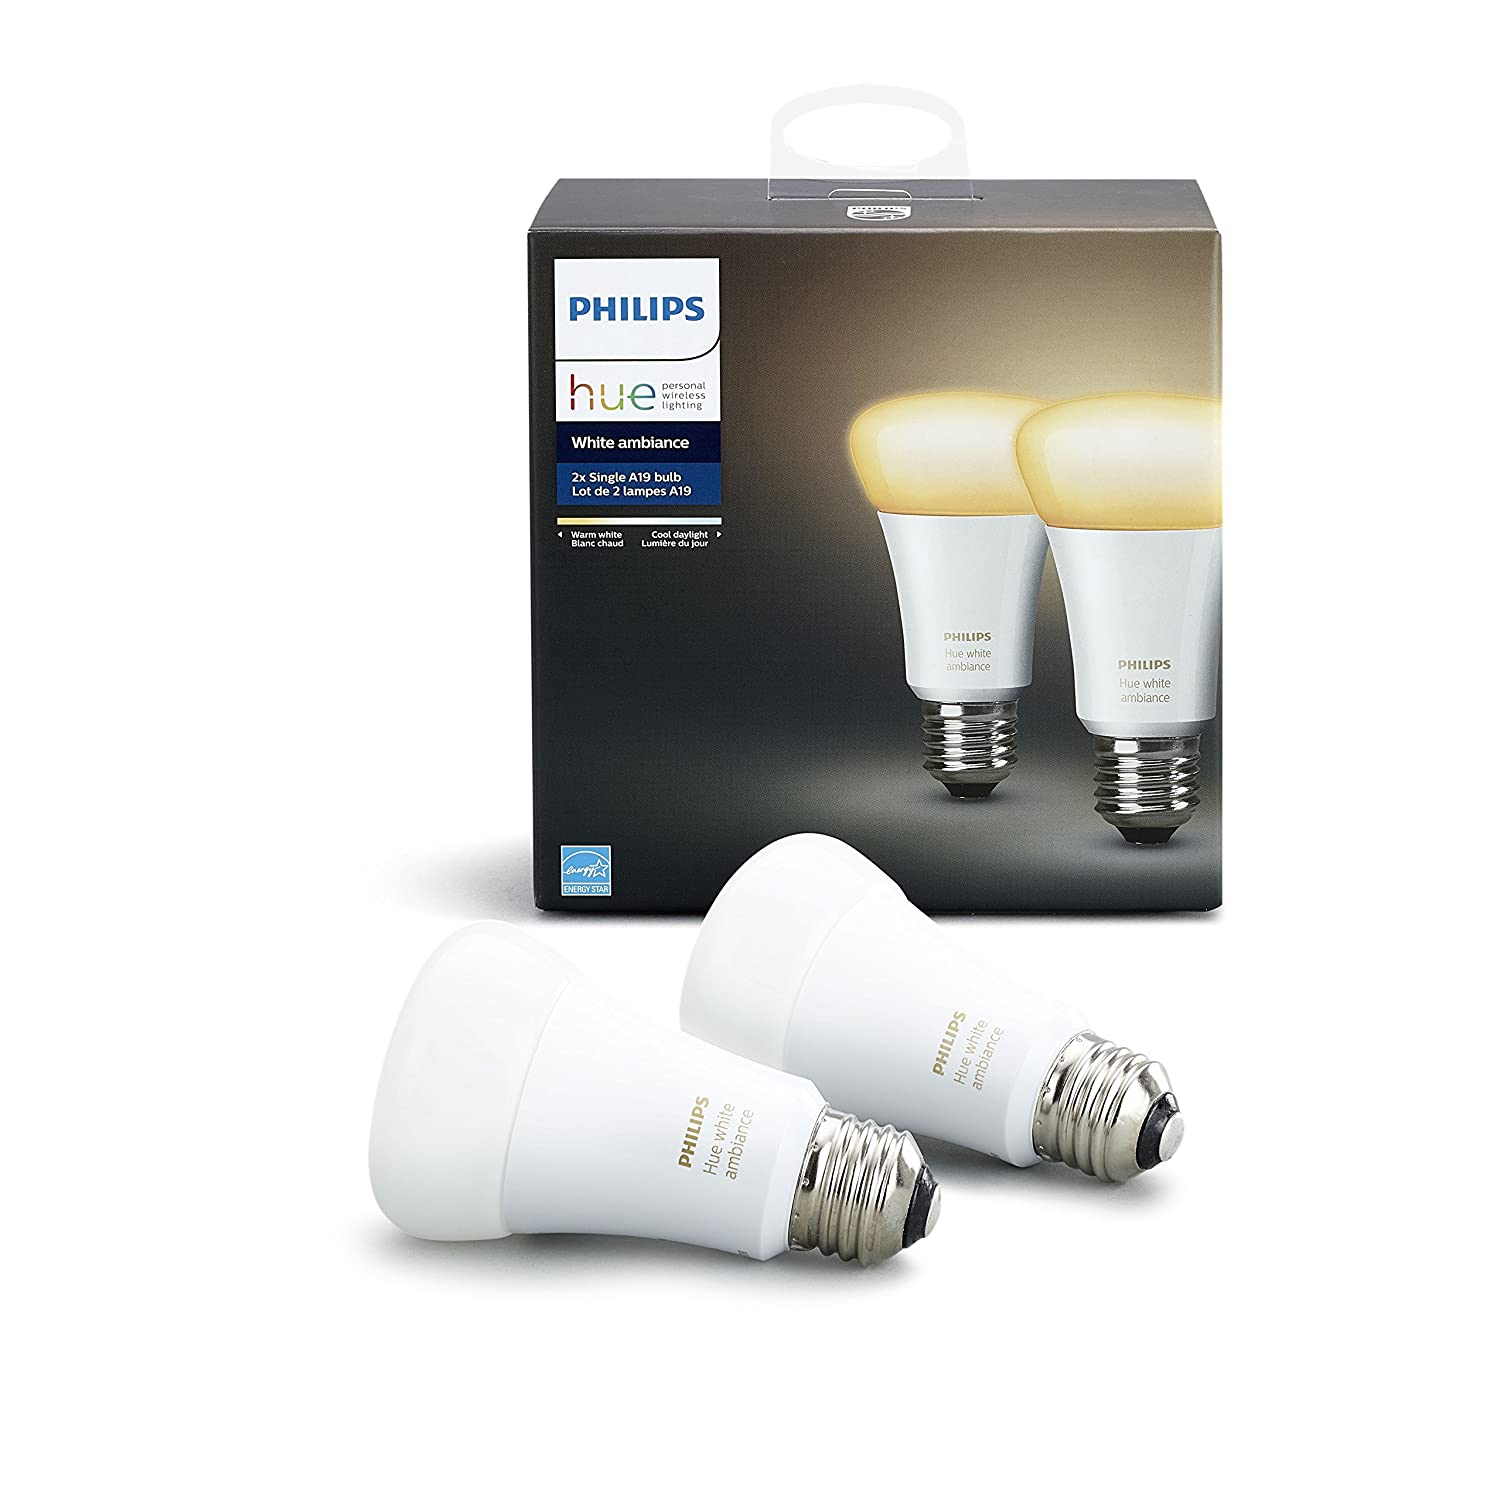 Philips Hue 2 Pack White Ambiance 60W Equivalent Dimmable LED Smart Bulb Works with Alexa Apple Homekit and Google Assistant